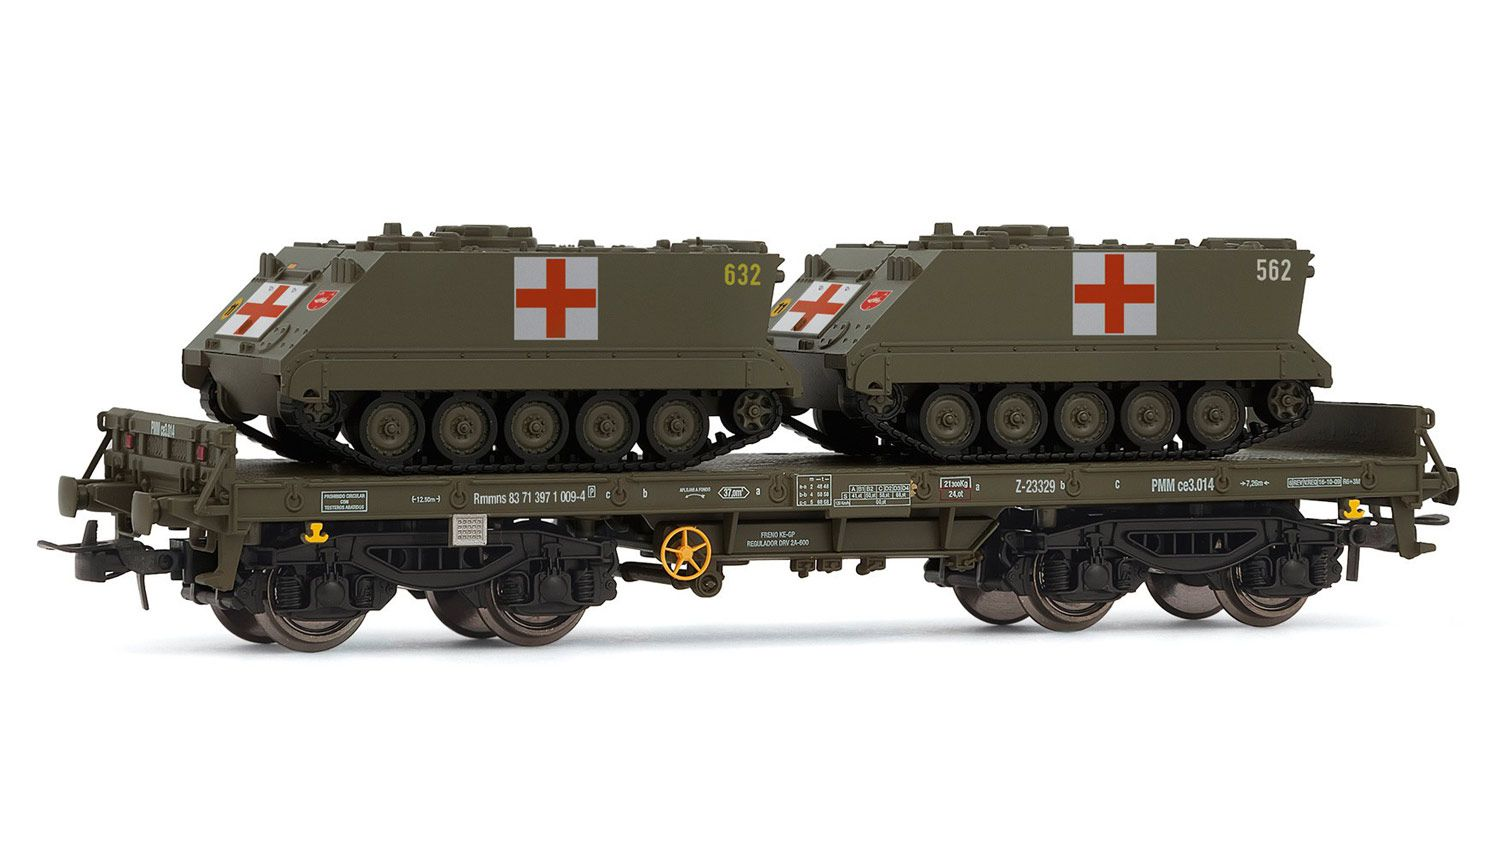 Picture Gallery for Electrotren E5174 Low Side Wagon with Medical APCs - R